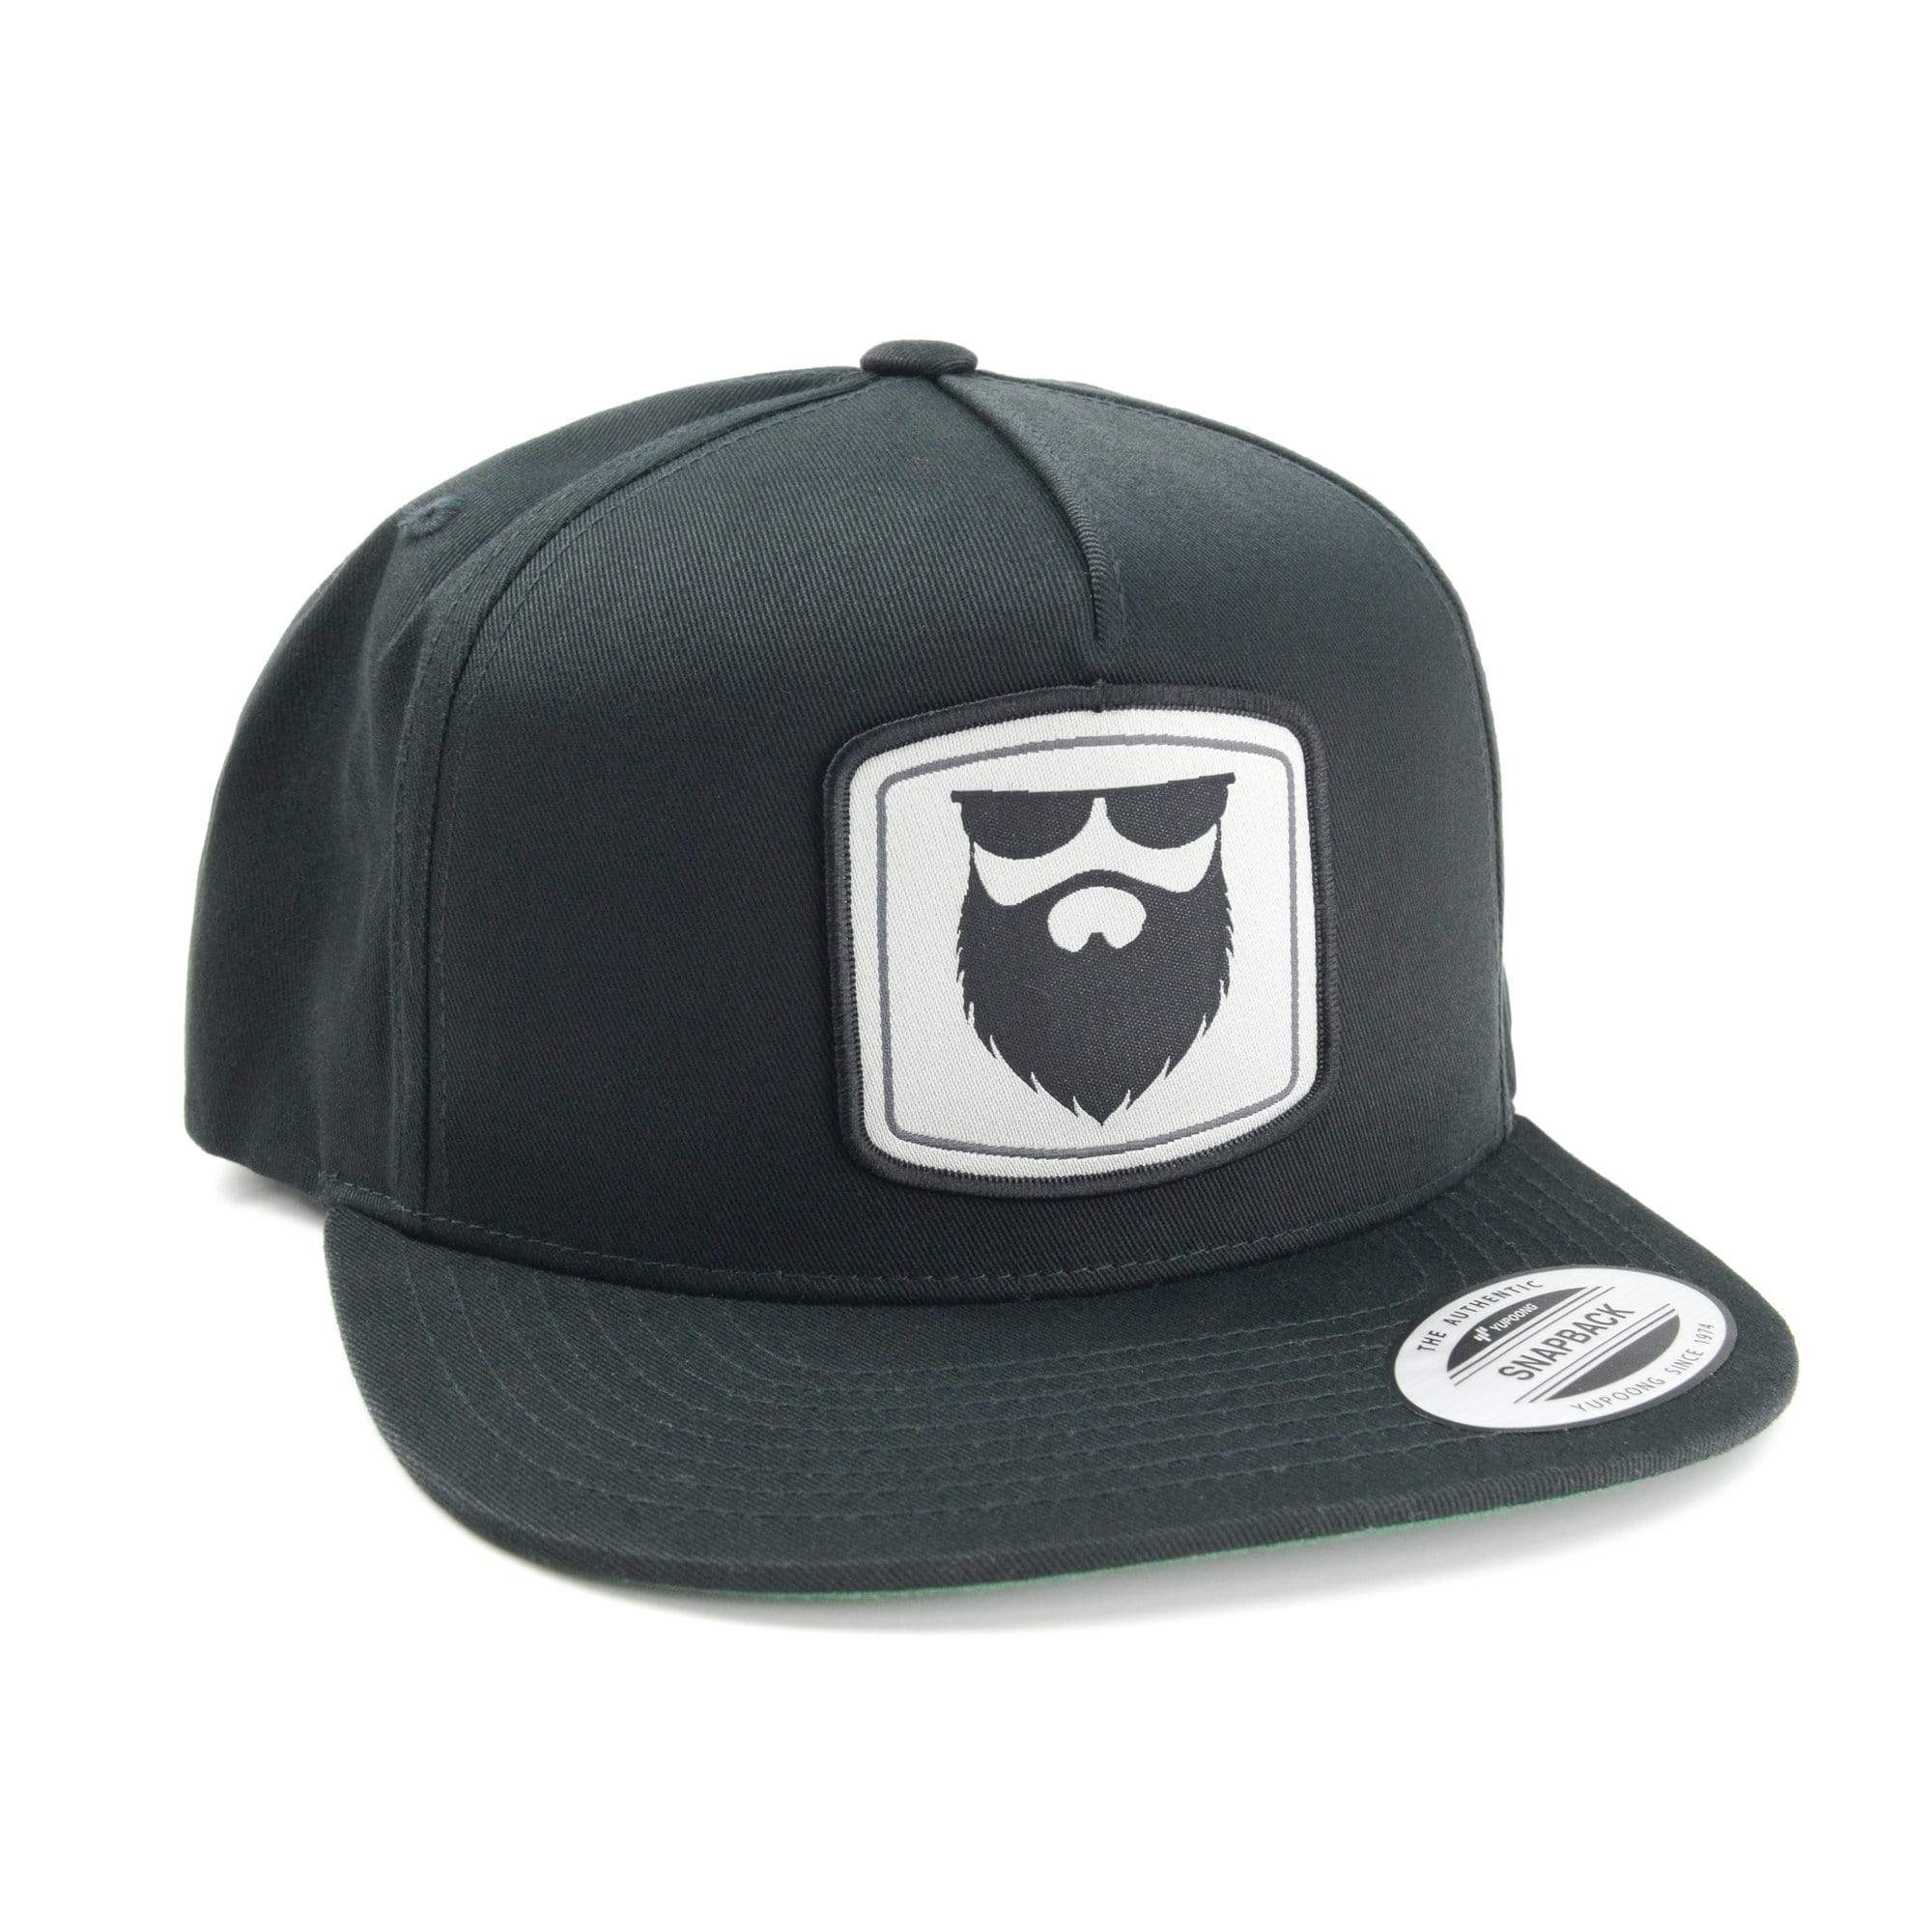 NSL Beard Gear Snapback - Black